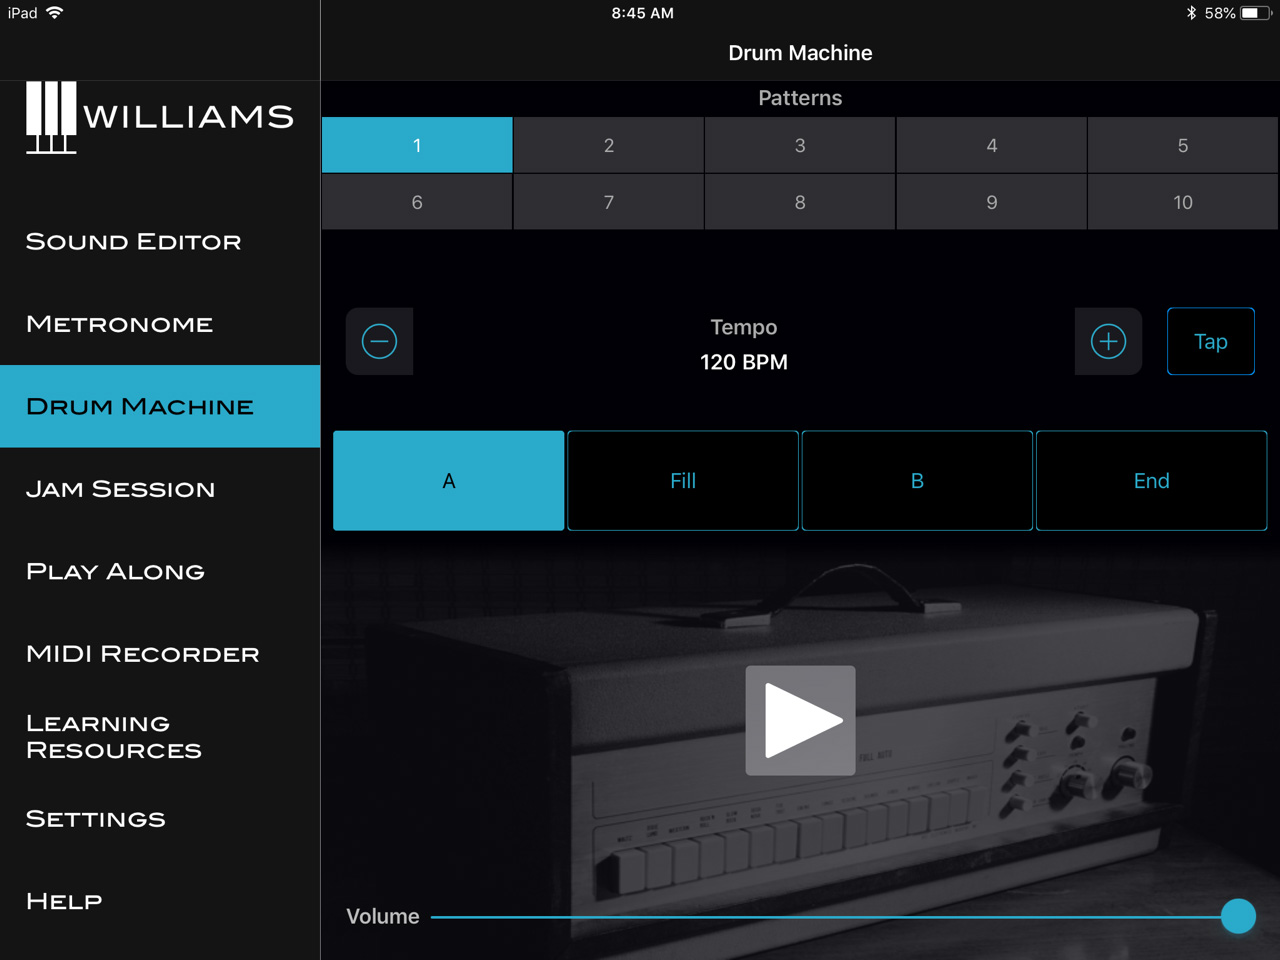 Williams App Drum Machine